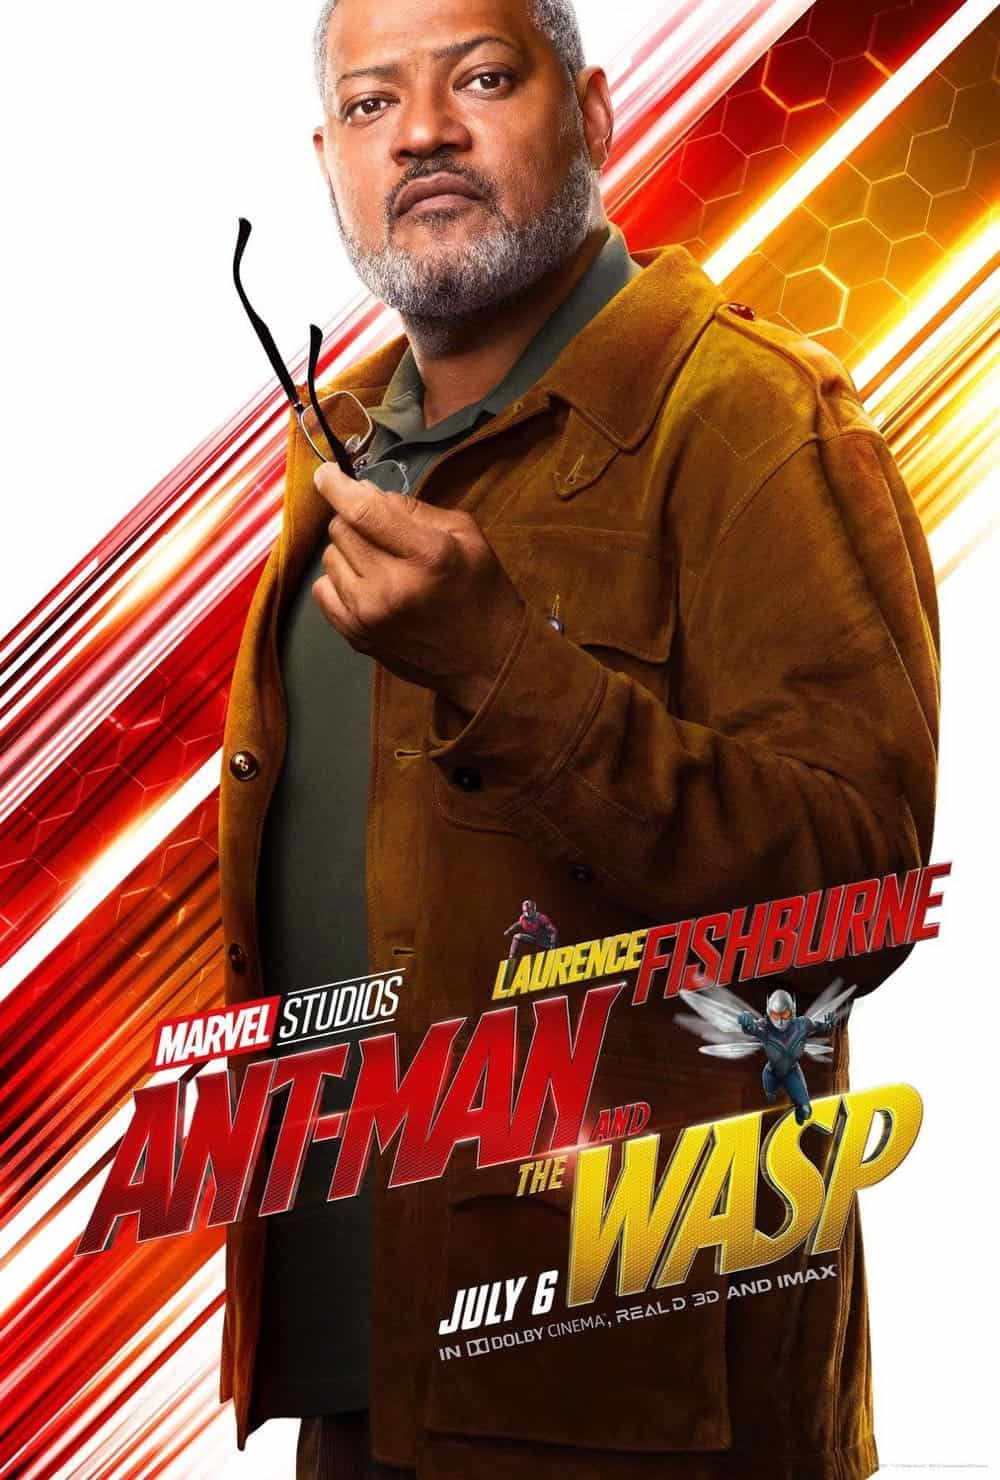 Ant-Man-And-The-Wasp-Movie-Character-Poster-Laurence-Fishburne